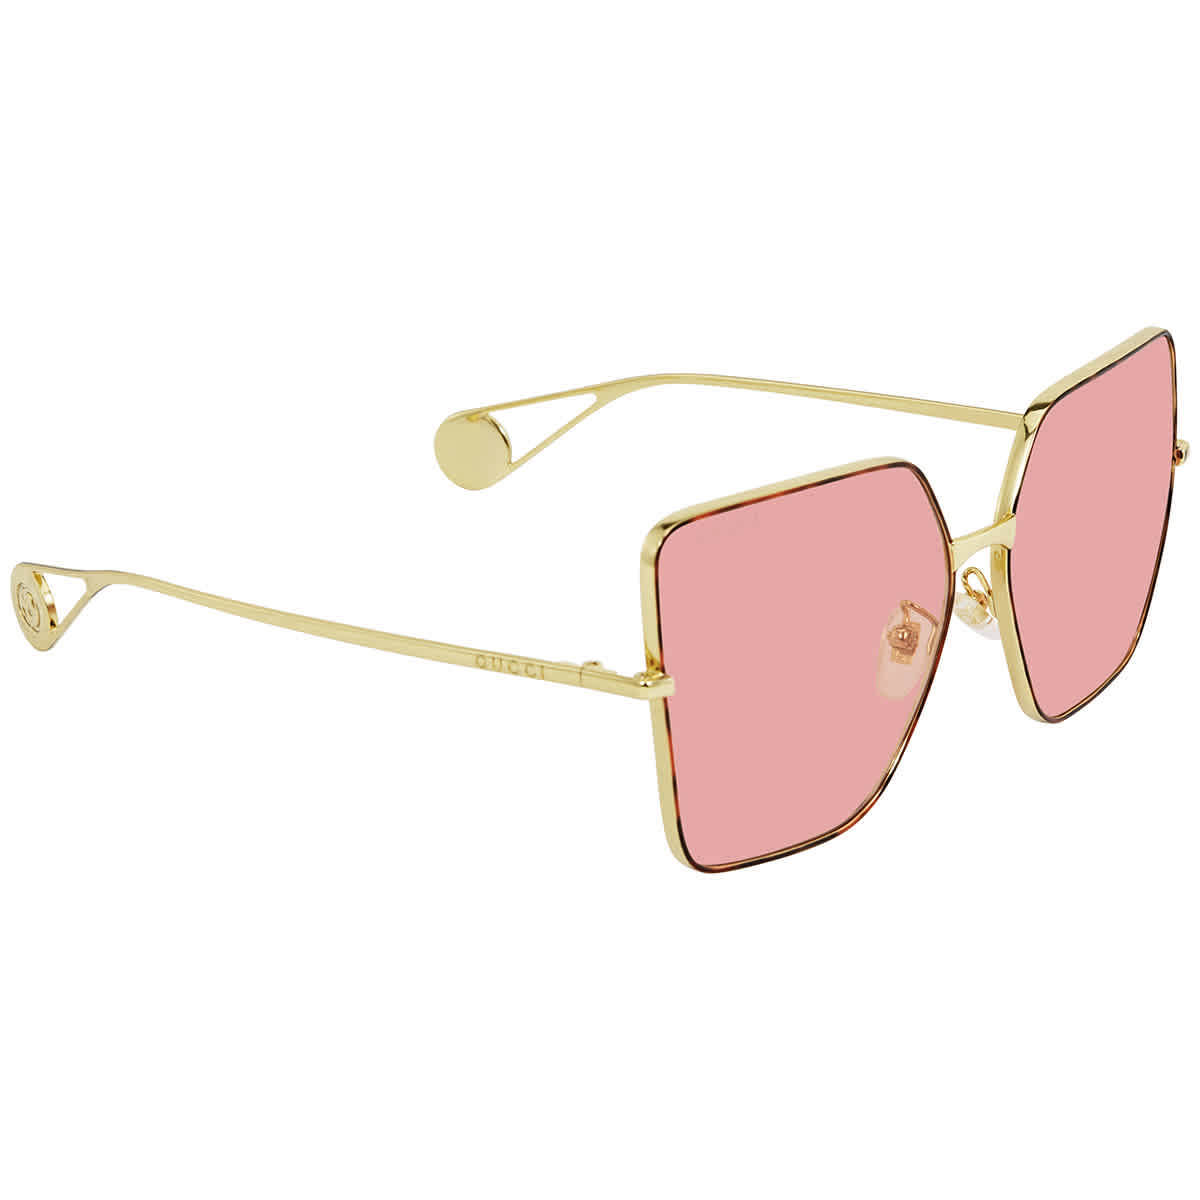 Gucci Pink Butterfly Ladies Sunglasses Gg0436s00561 In Gold Tone,pink